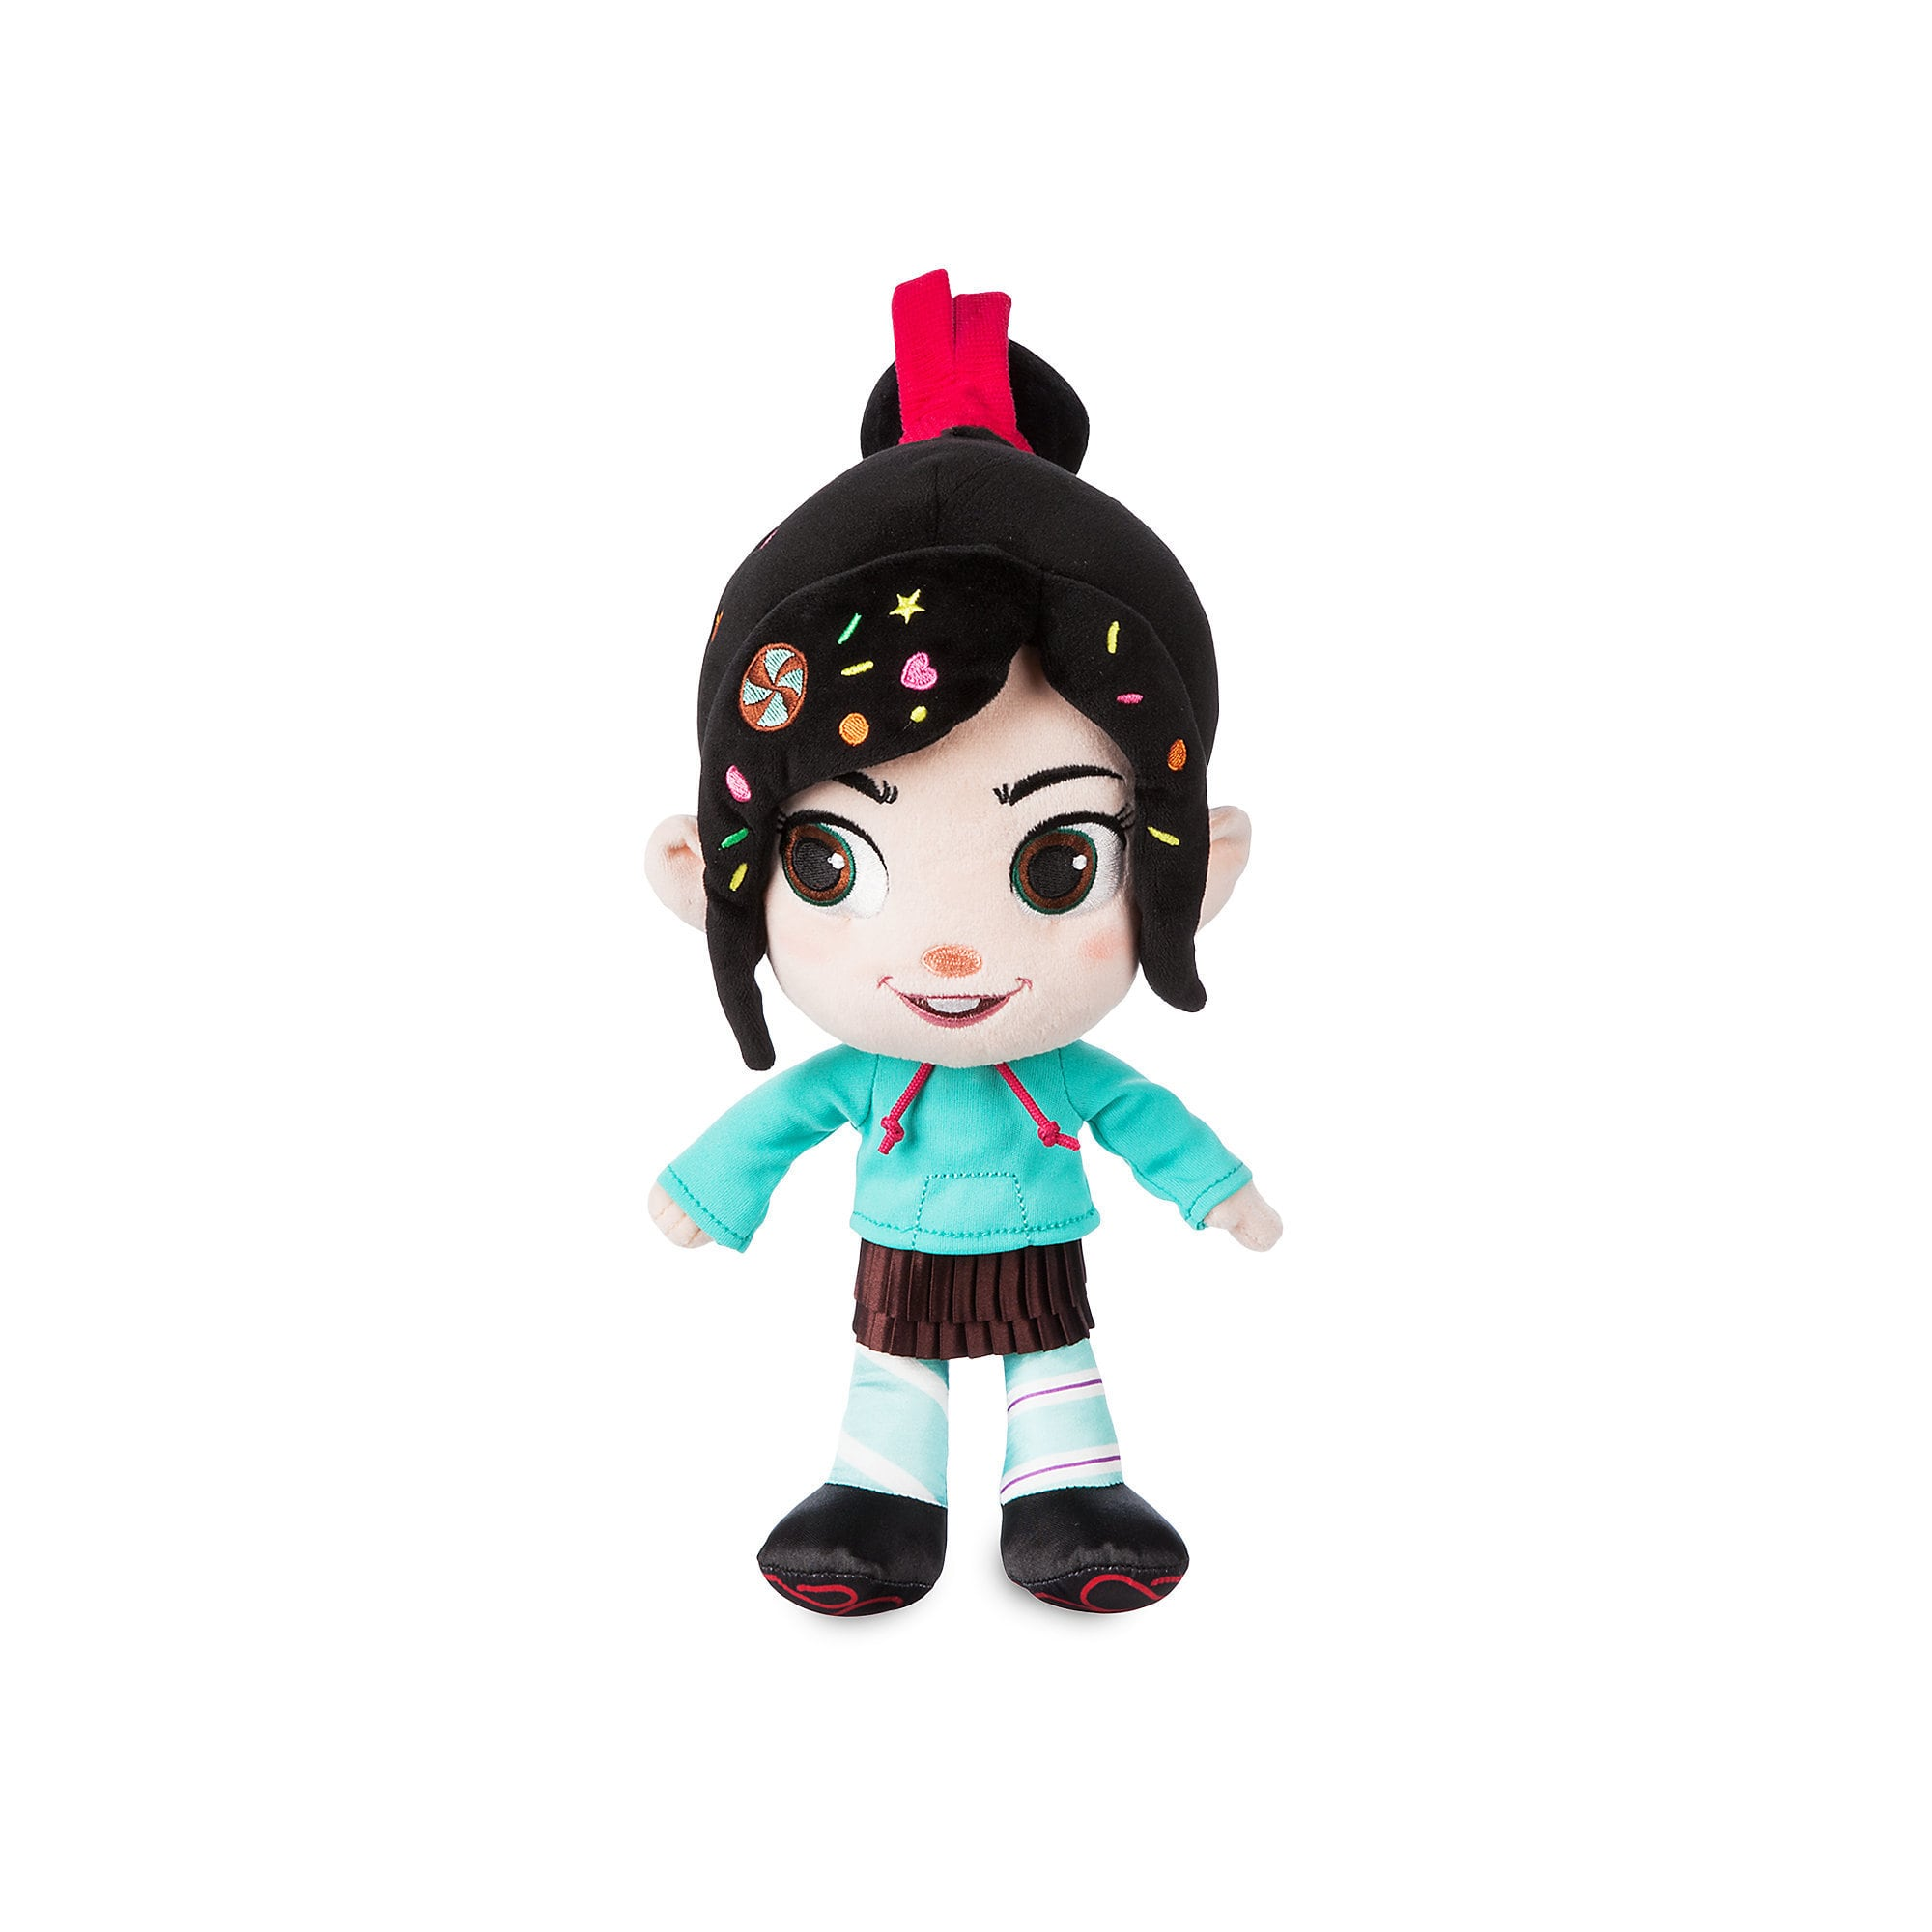 Disney Wreck It Ralph Breaks the Internet Vanellope Plush Doll